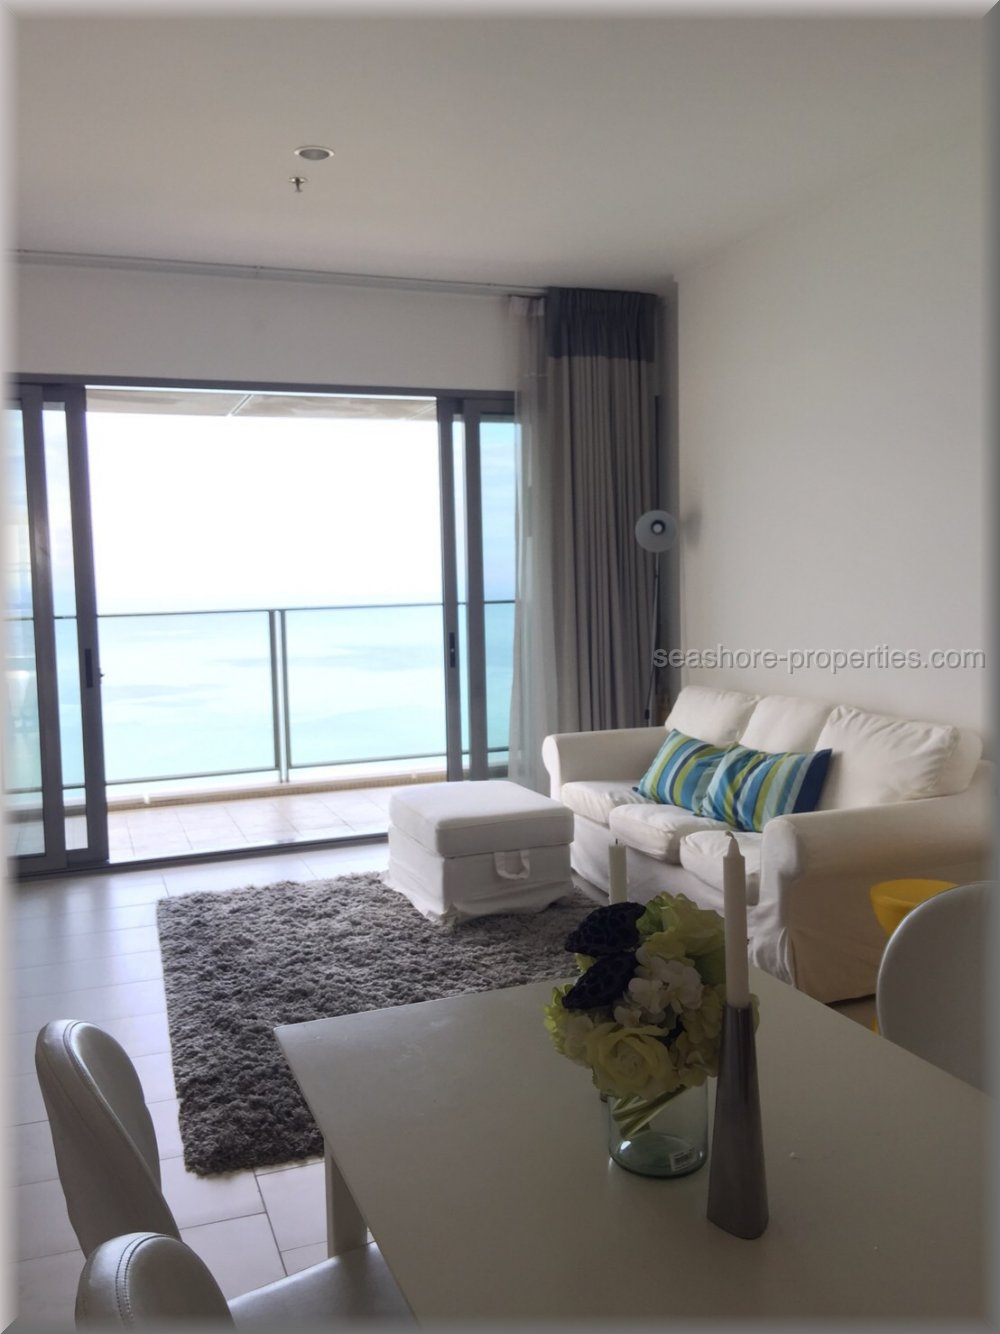 pic-6-Seashore Properties (Thailand) Co. Ltd. Northpoint Condominium   for sale in Wong Amat Pattaya